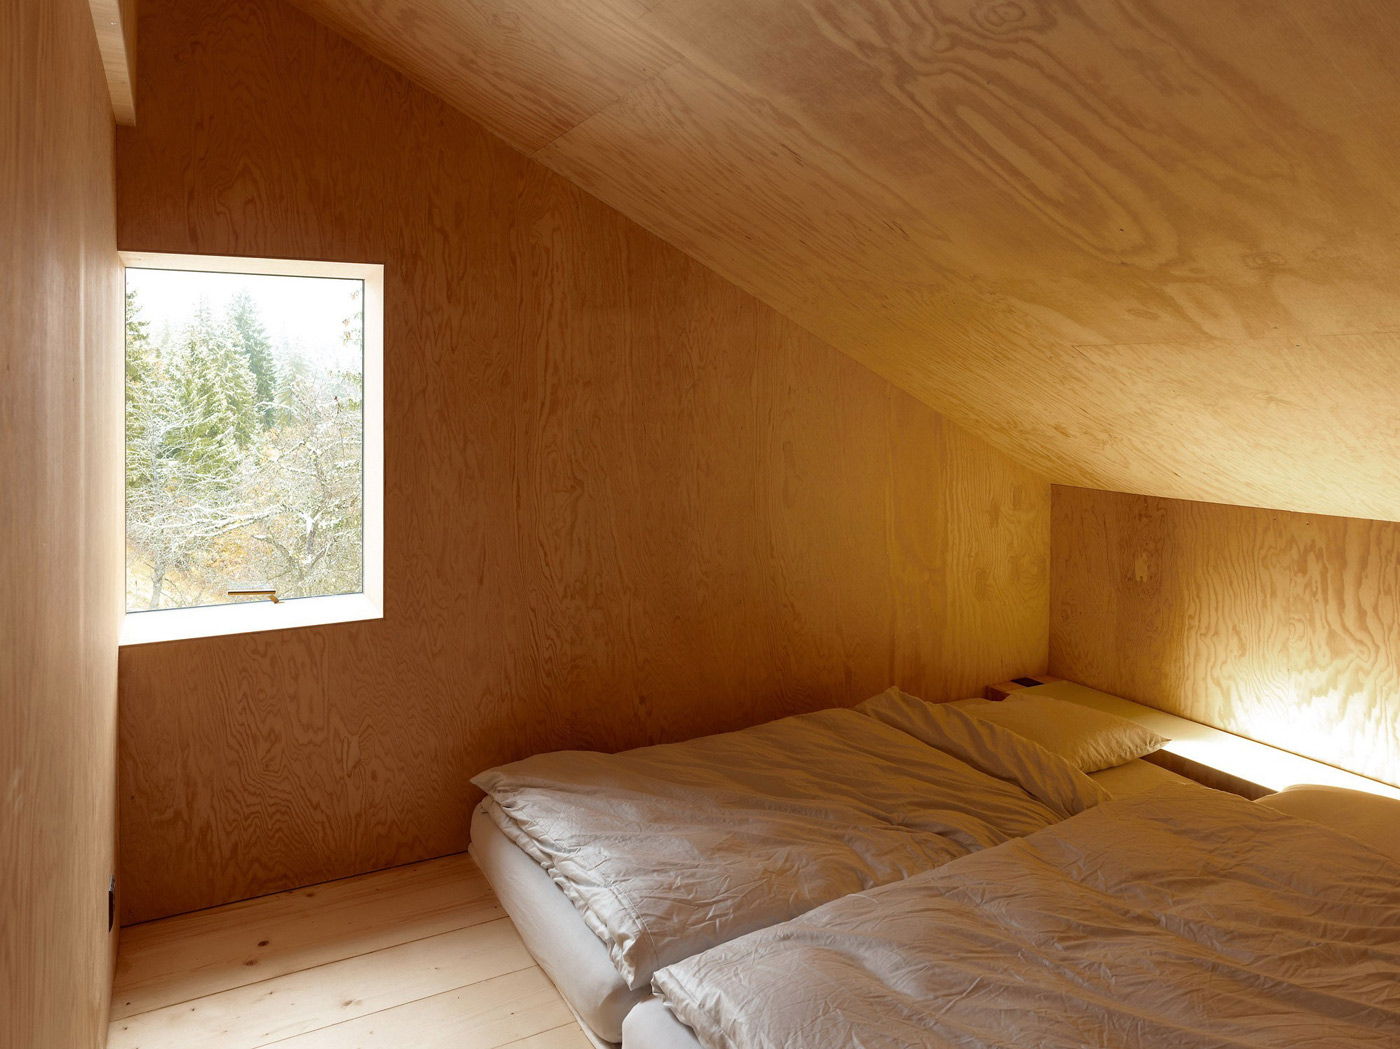 Bedroom, Holiday Home Renovation in Ayent, Switzerland